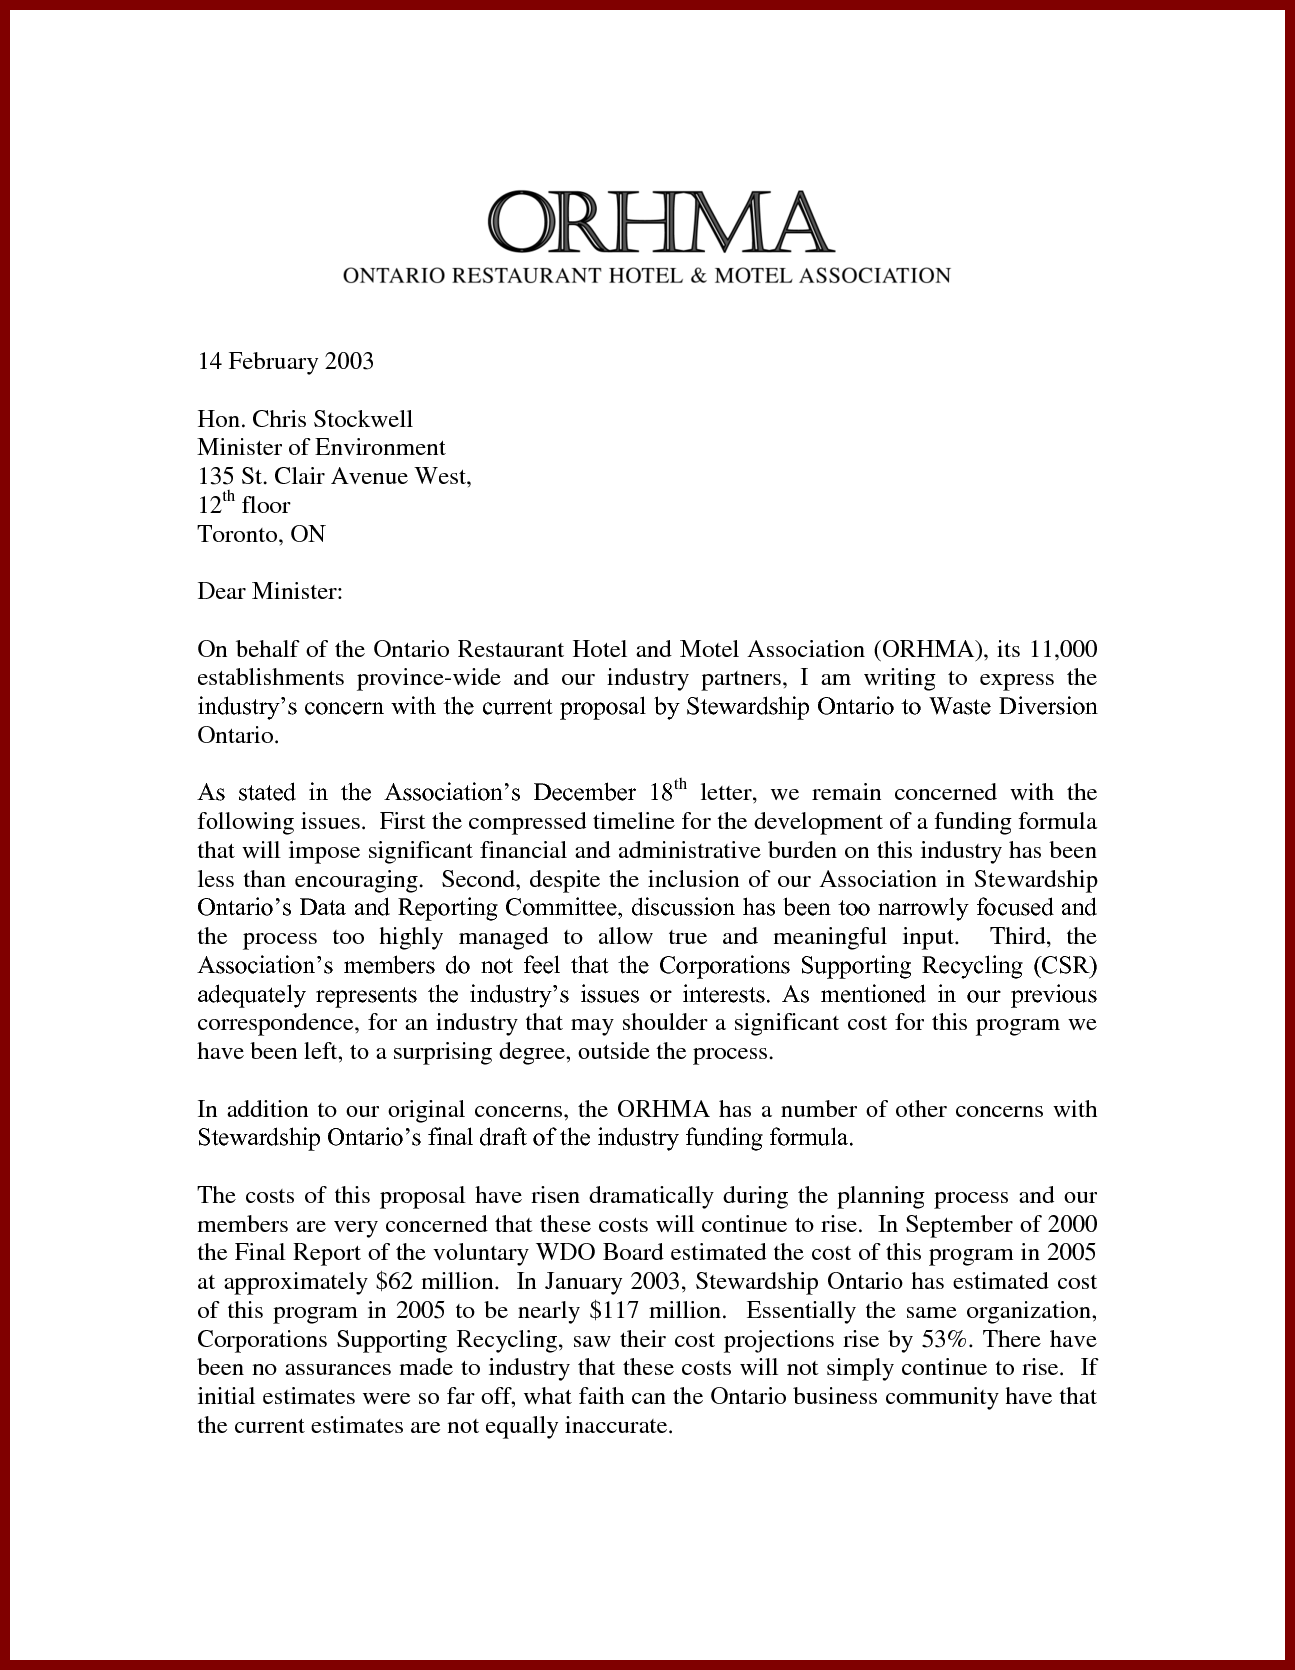 Draft Business Proposal Letter Sample To Offer Services